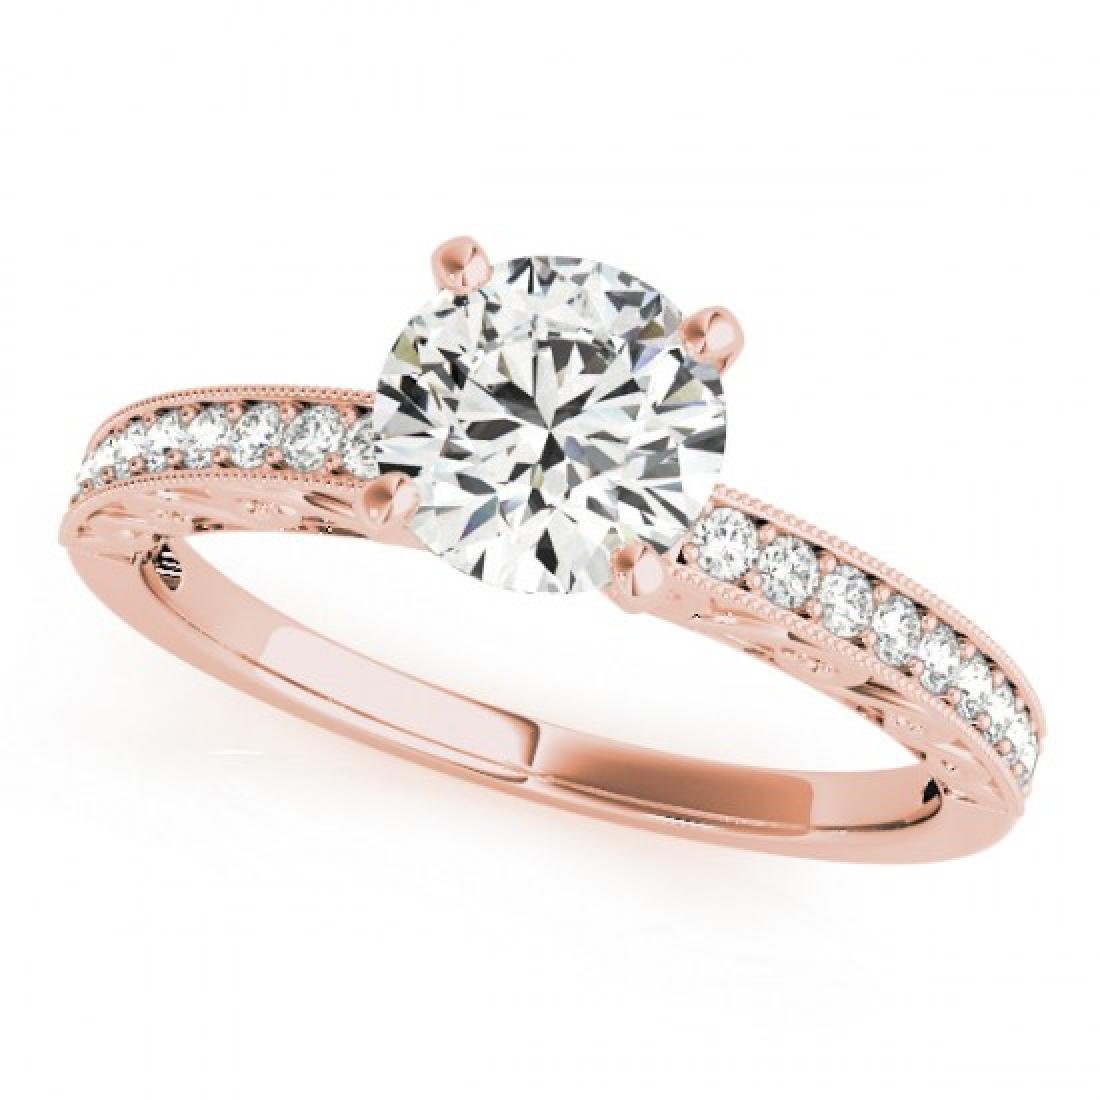 0.96 CTW Certified VS/SI Diamond Solitaire Antique Ring